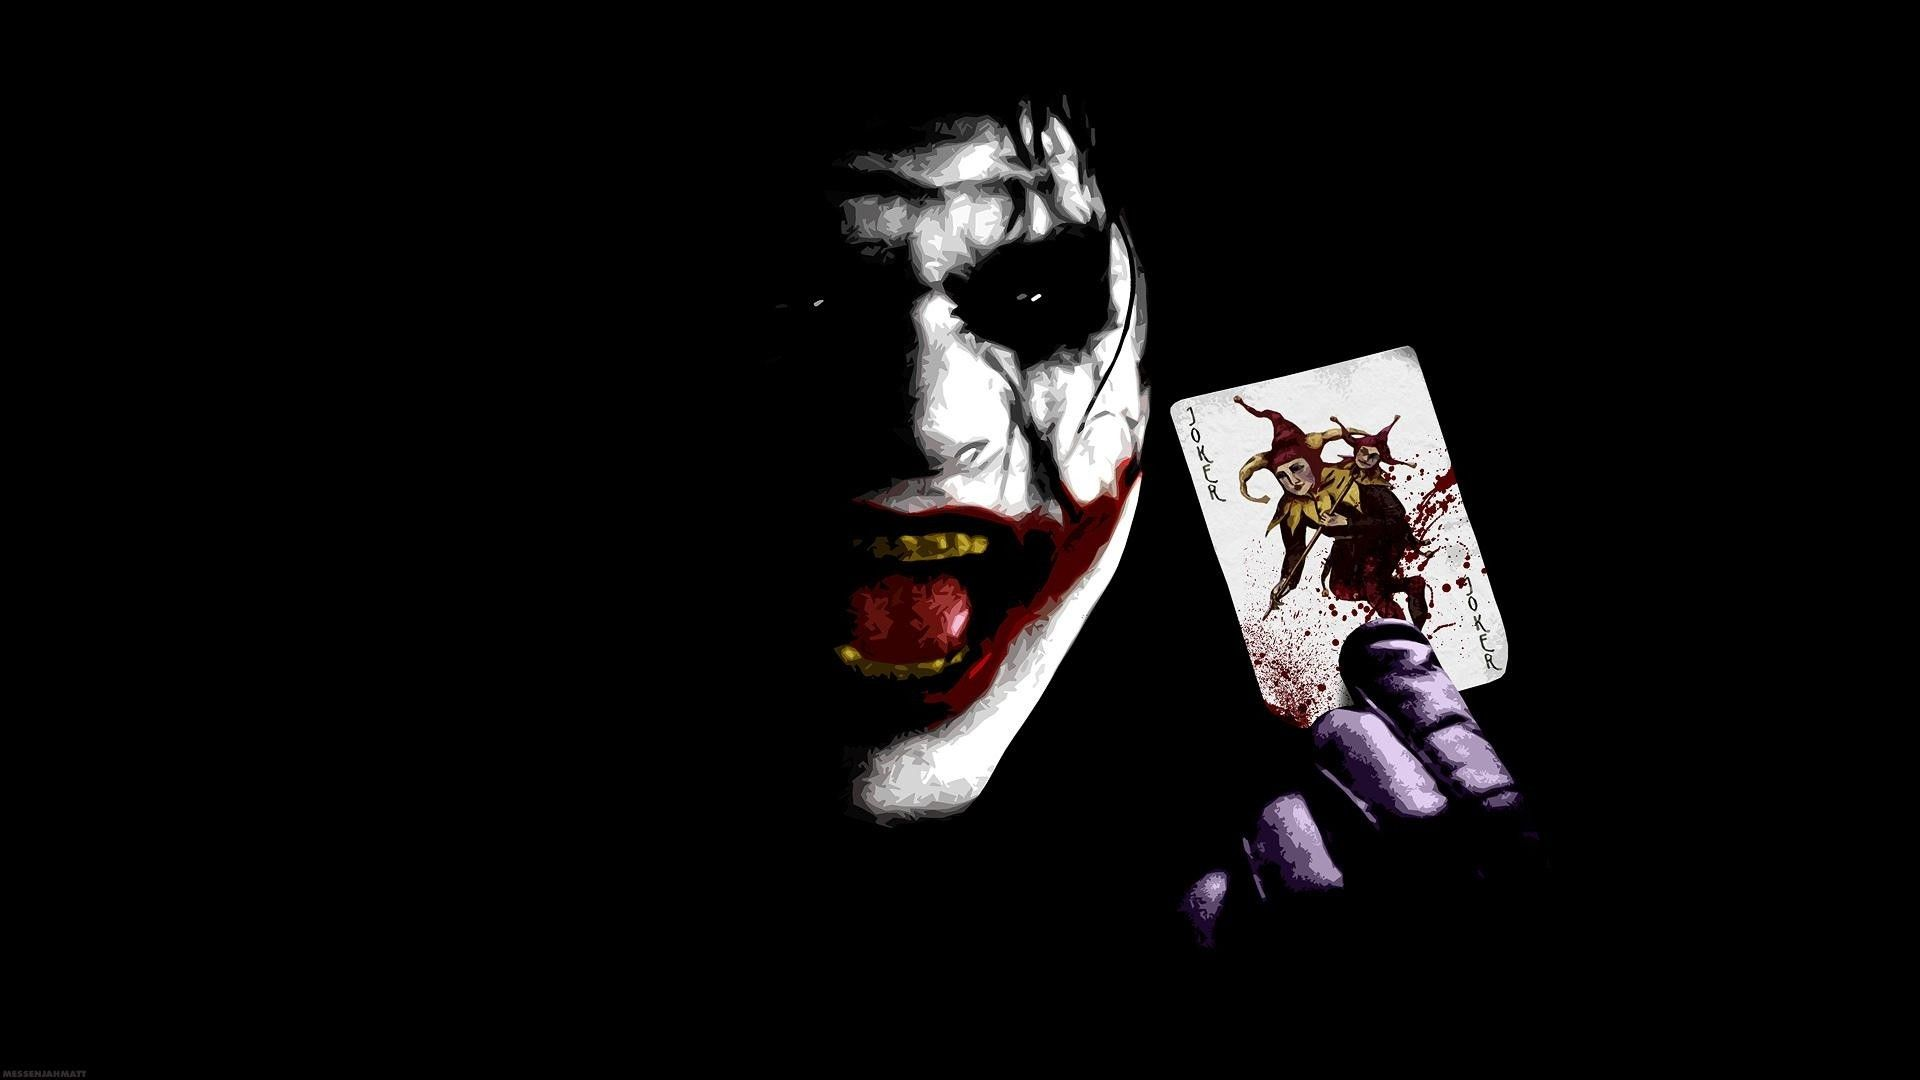 Jocker Jpg 1920 1080 With Images Joker Wallpapers Joker Hd